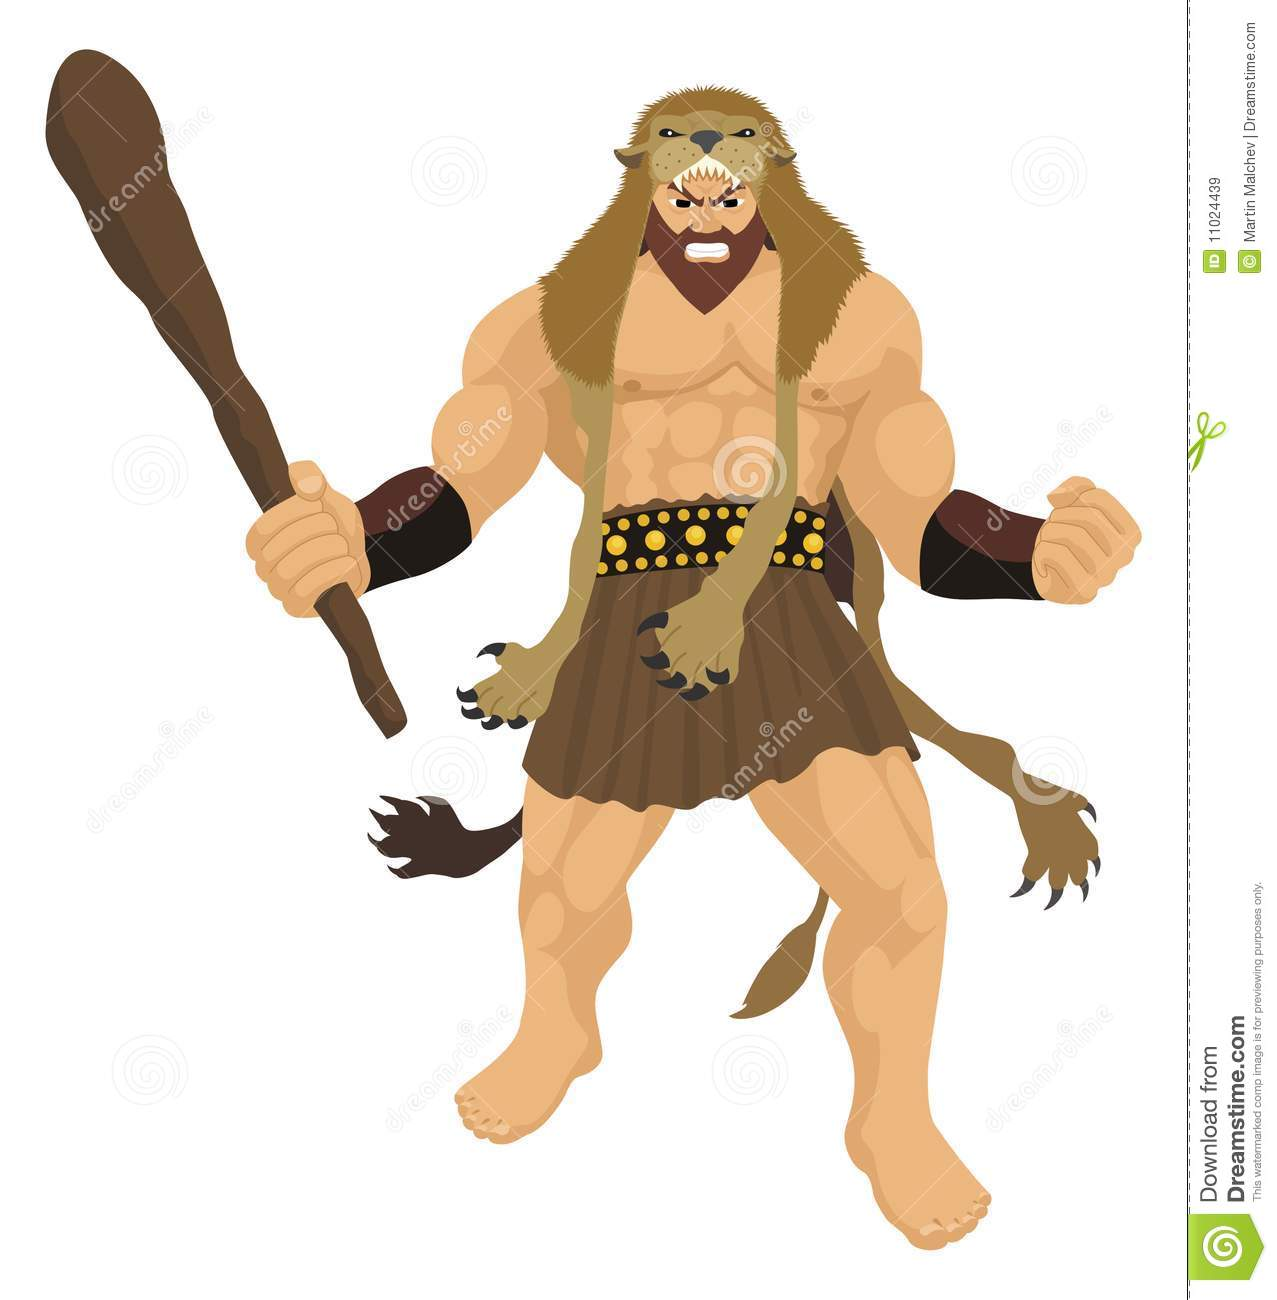 Royalty Free Stock Images Heracles On White Image 11024439